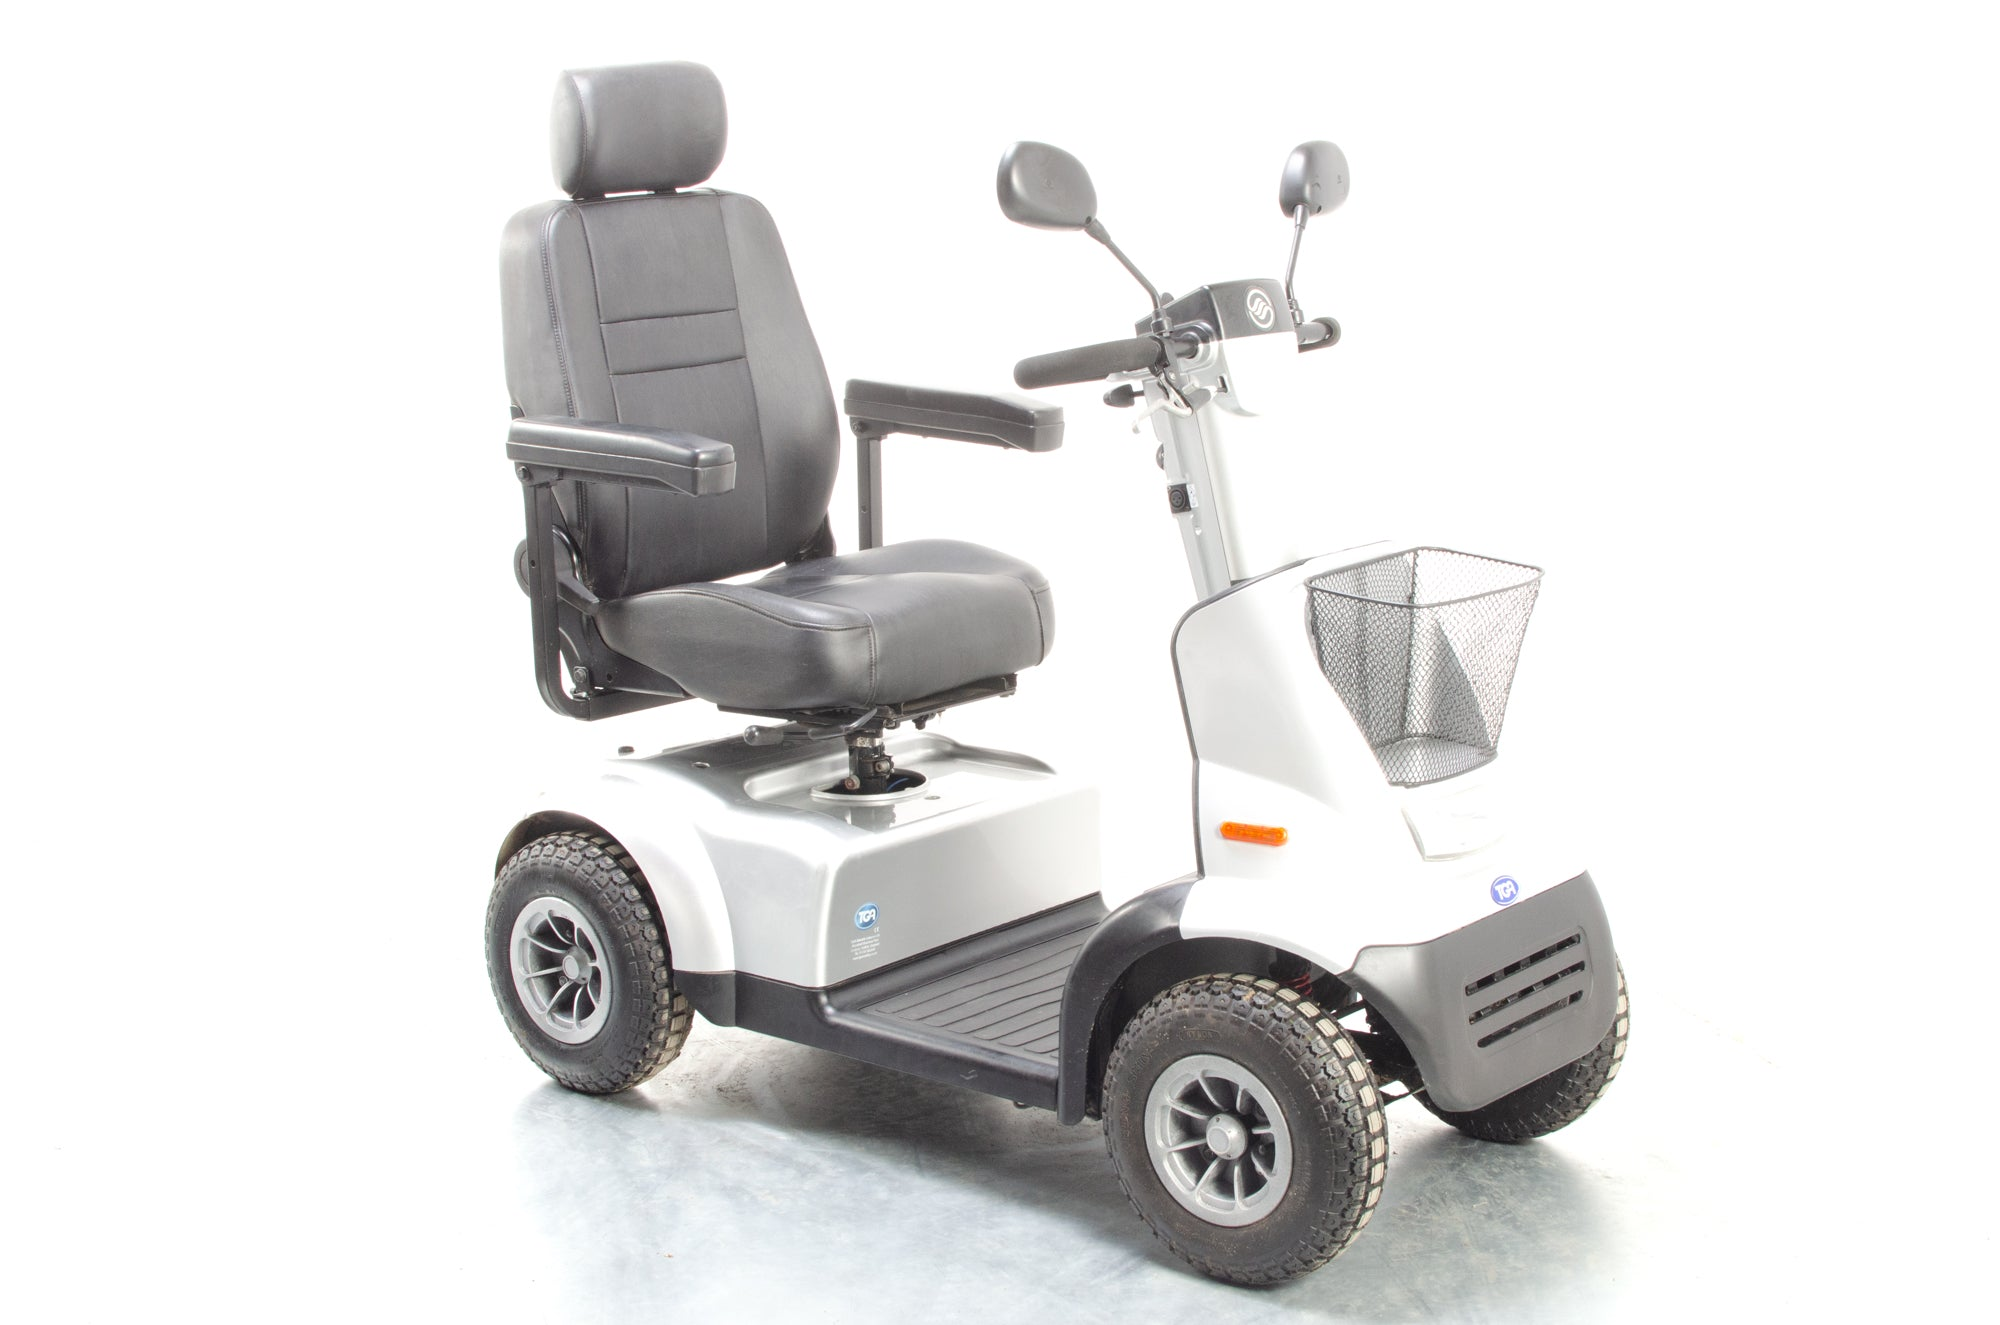 TGA Breeze Midi 4 Used Electric Mobility Scooter 8mph Road Pavement Suspension All-Terrain